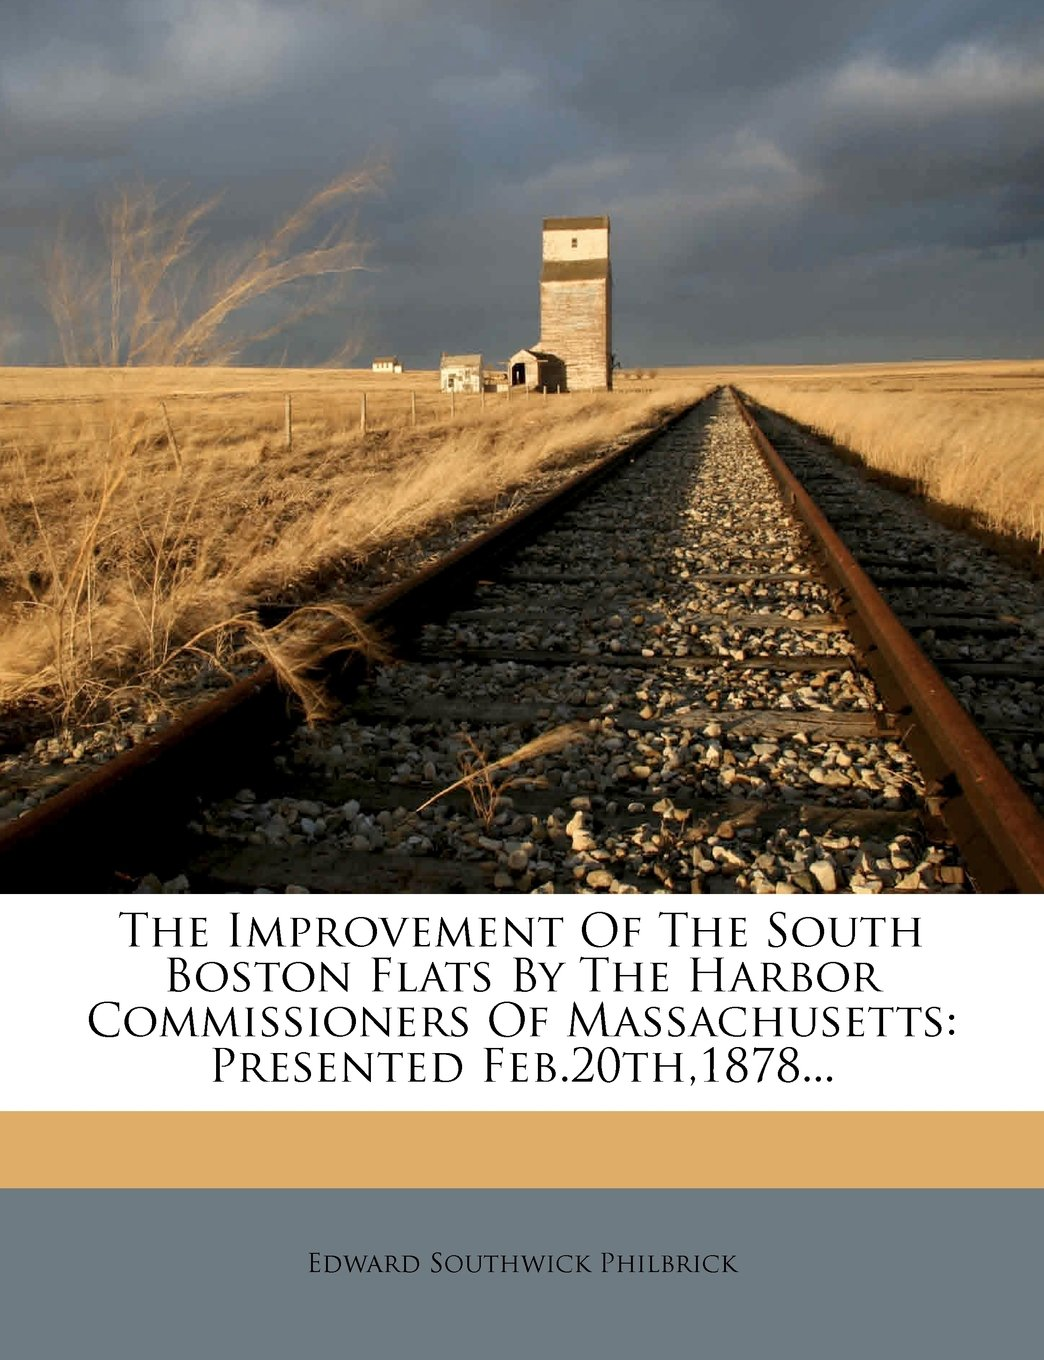 Download The Improvement Of The South Boston Flats By The Harbor Commissioners Of Massachusetts: Presented Feb.20th,1878... pdf